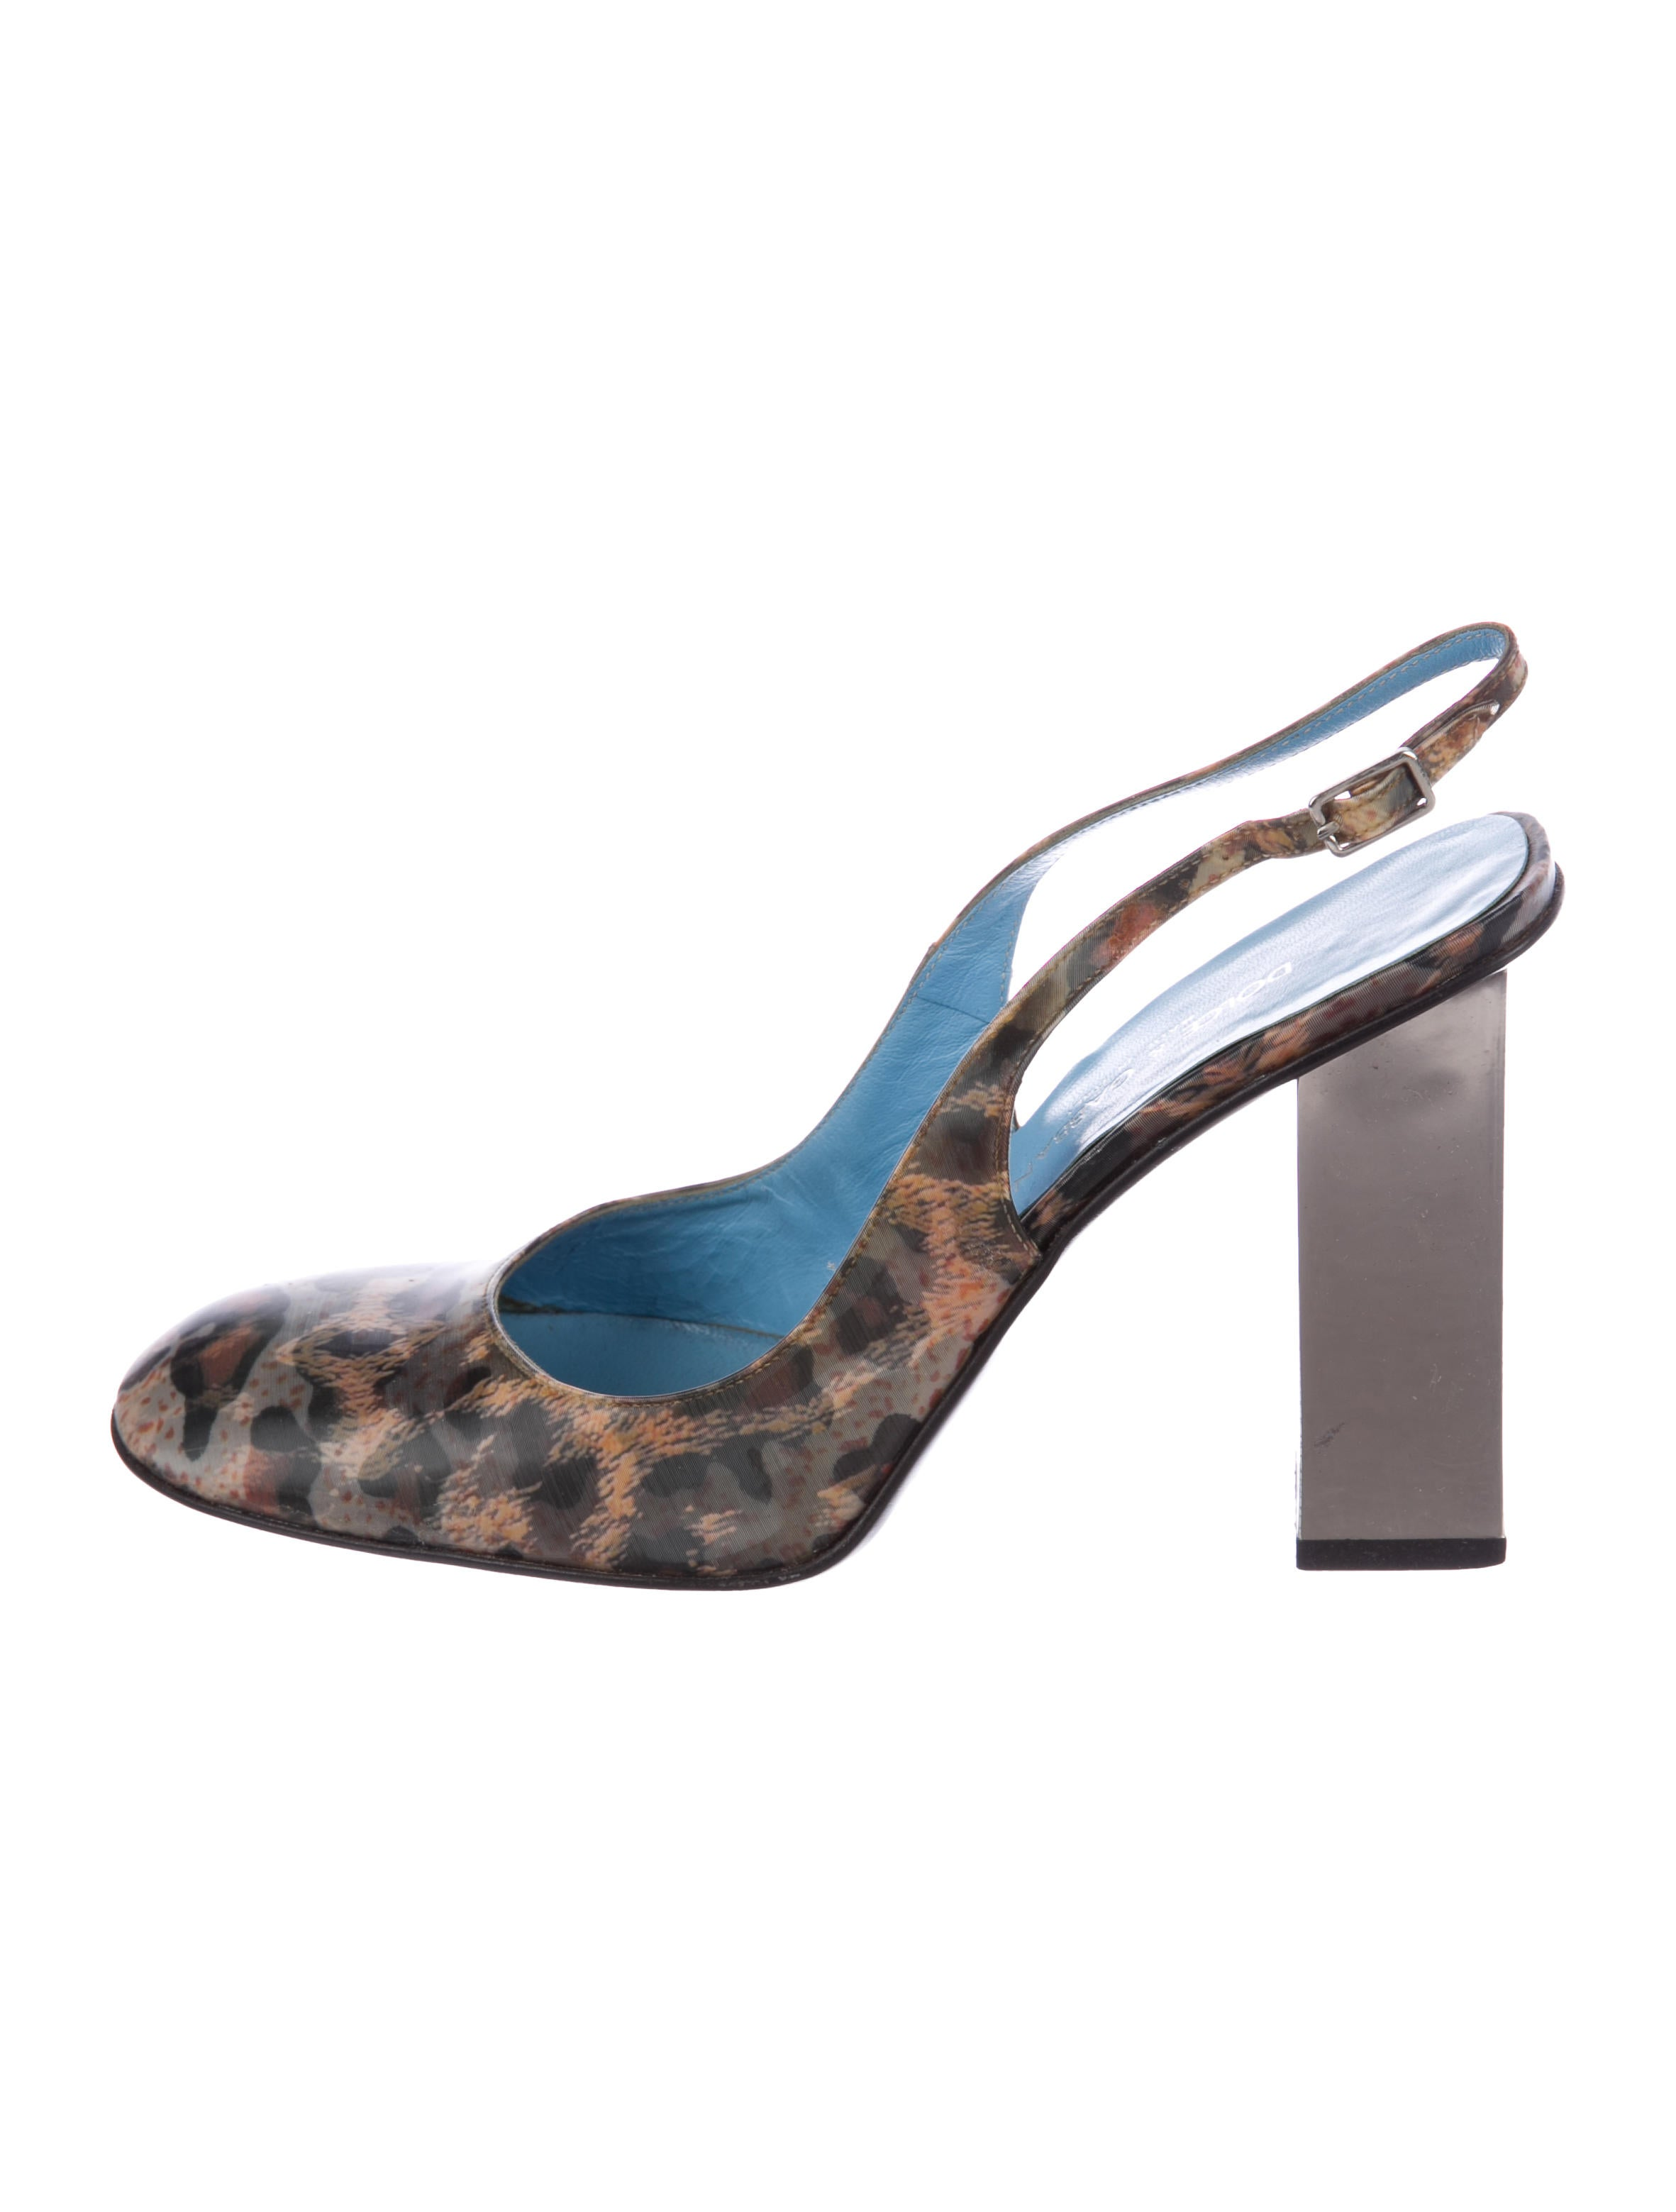 outlet view Dolce & Gabbana Holographic Slingback Pumps cheap sale discounts good selling for sale 0RHfrxtsL